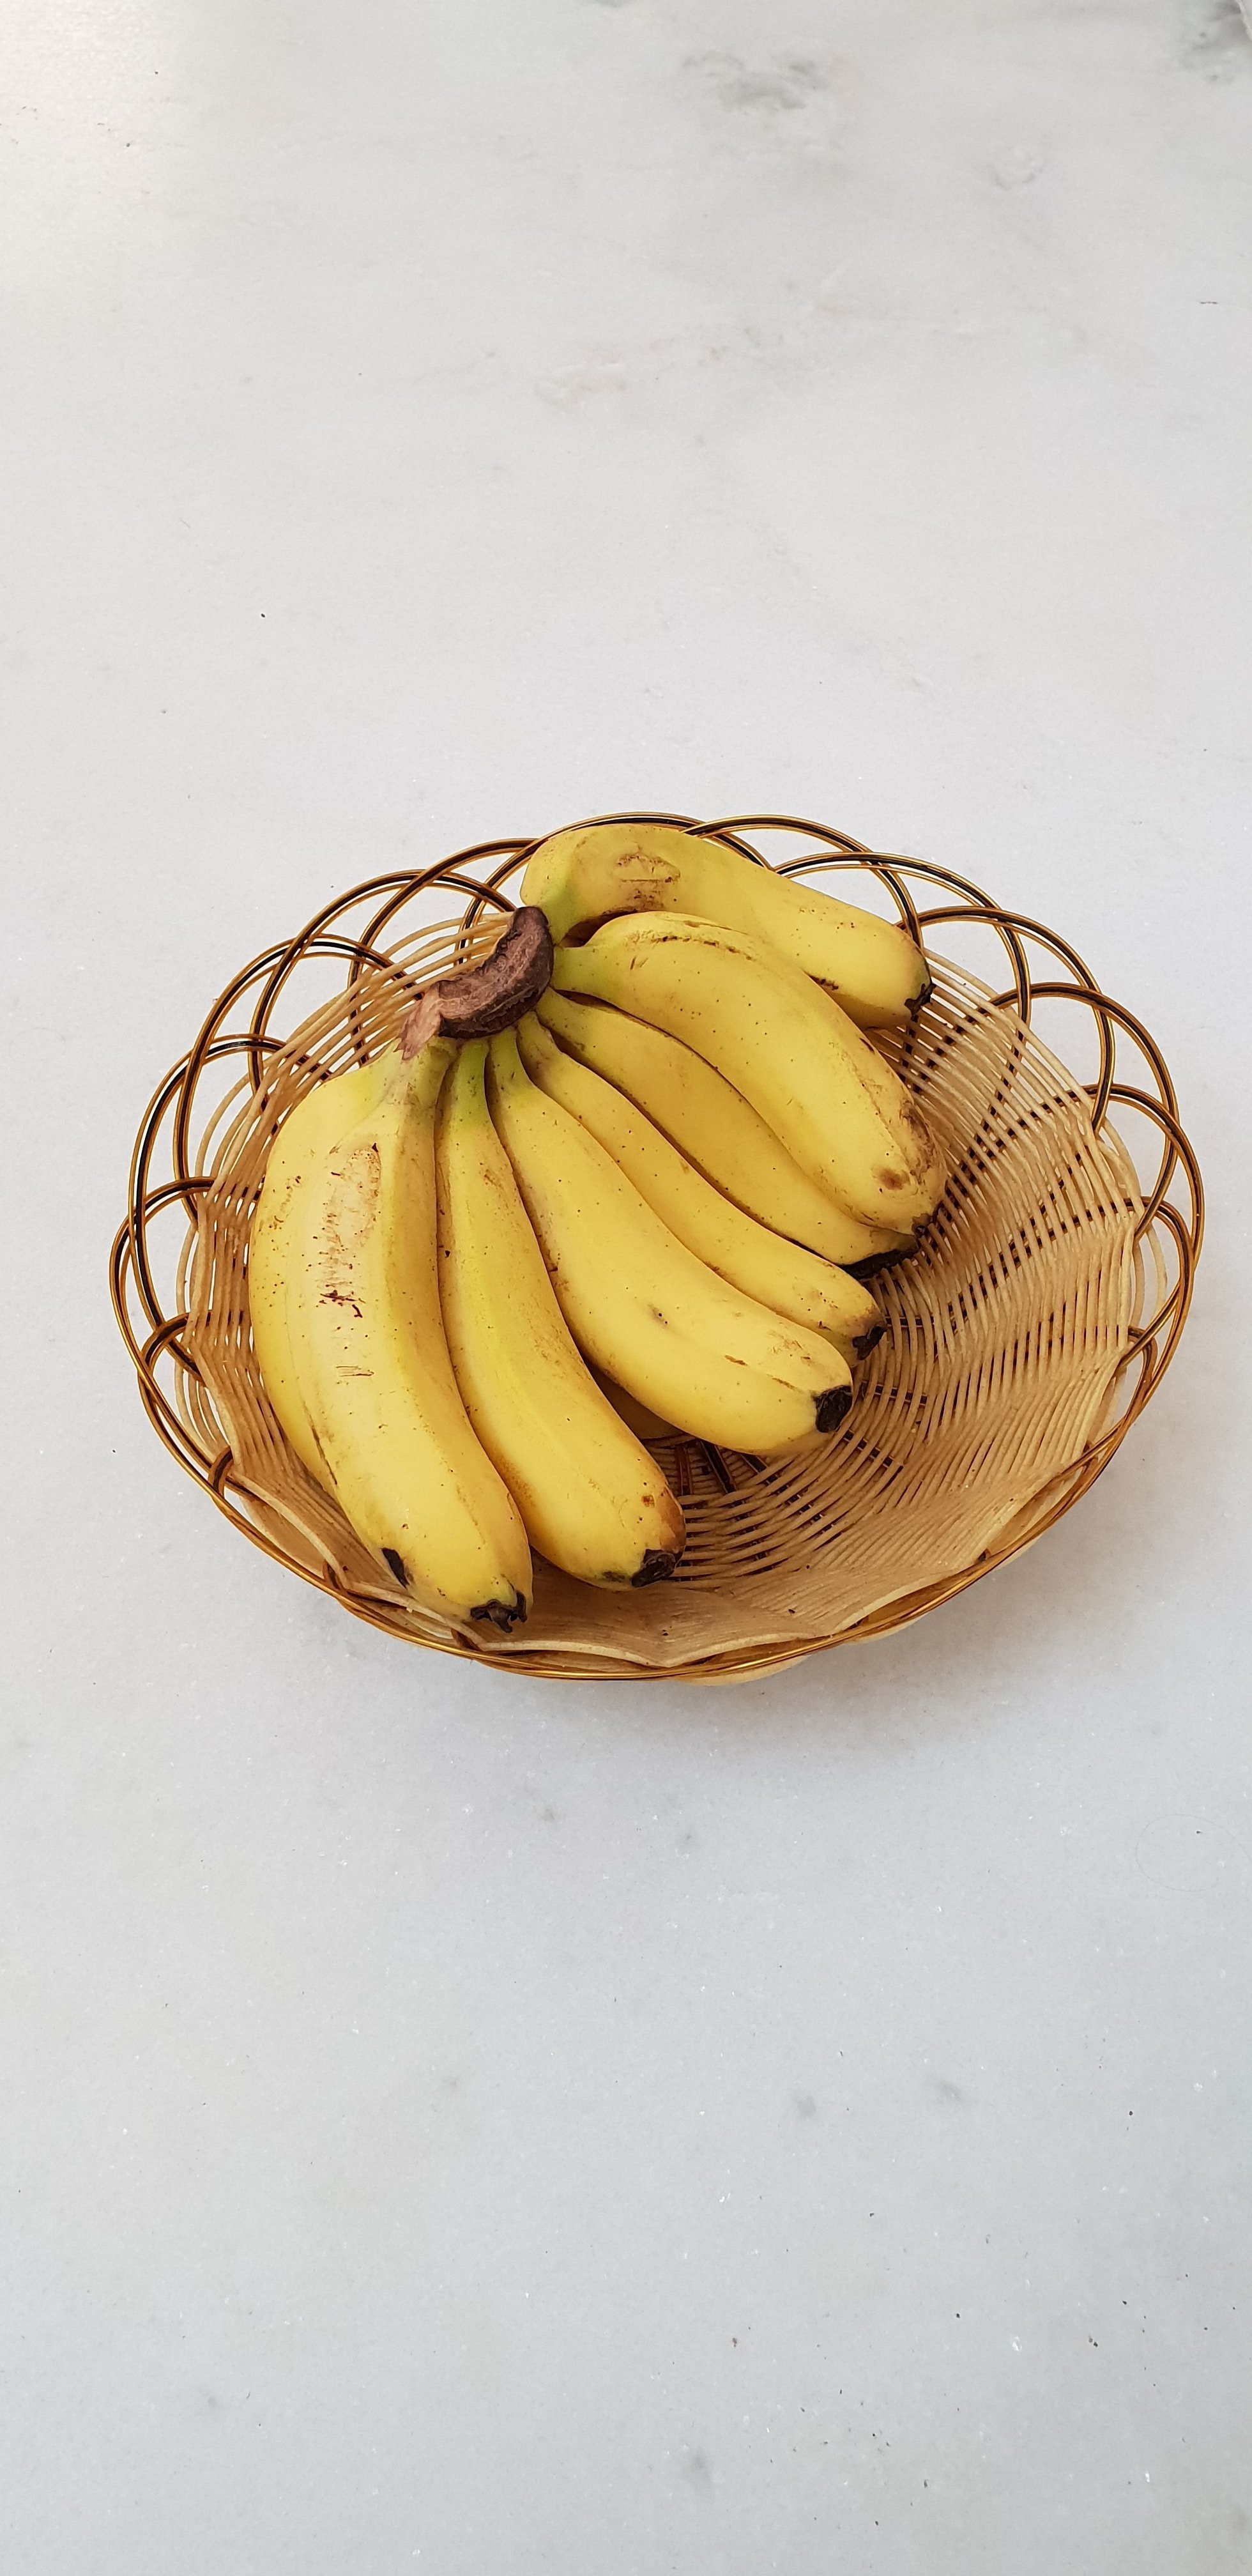 A bunch of bananas in a basked | Source: Unsplash.com